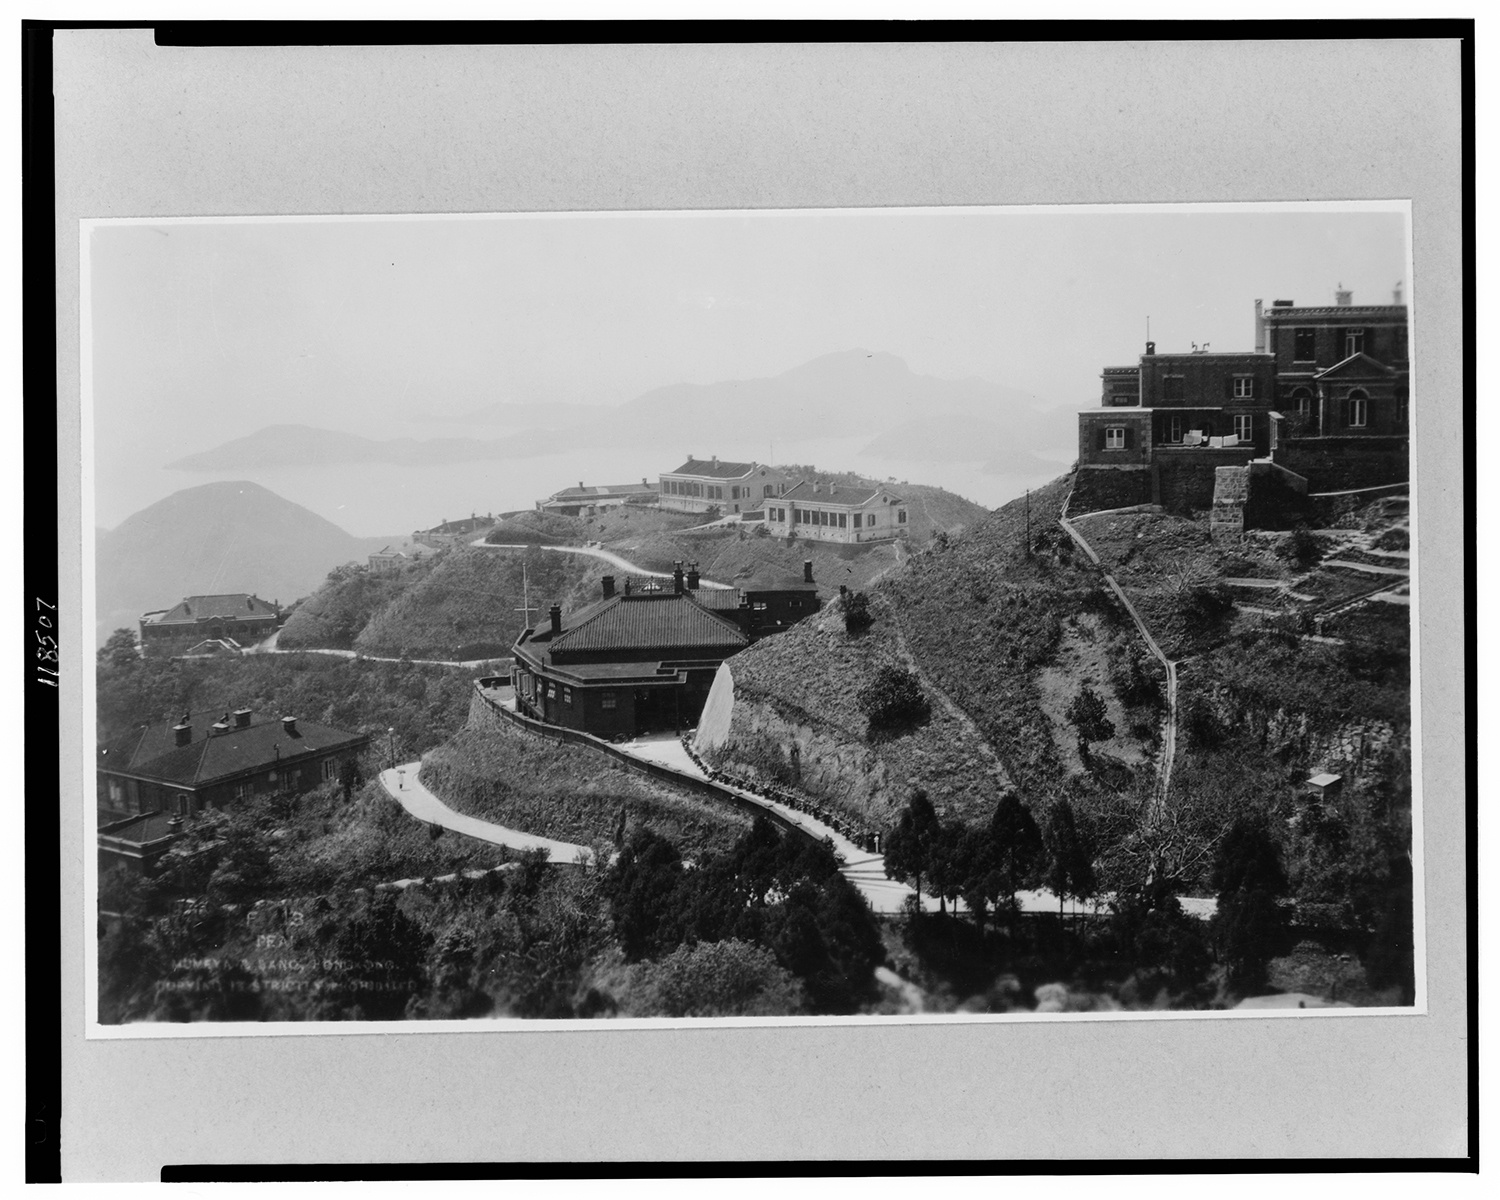 Estates on Victoria Peak, c. 1900. Courtesy of the Library of Congress.